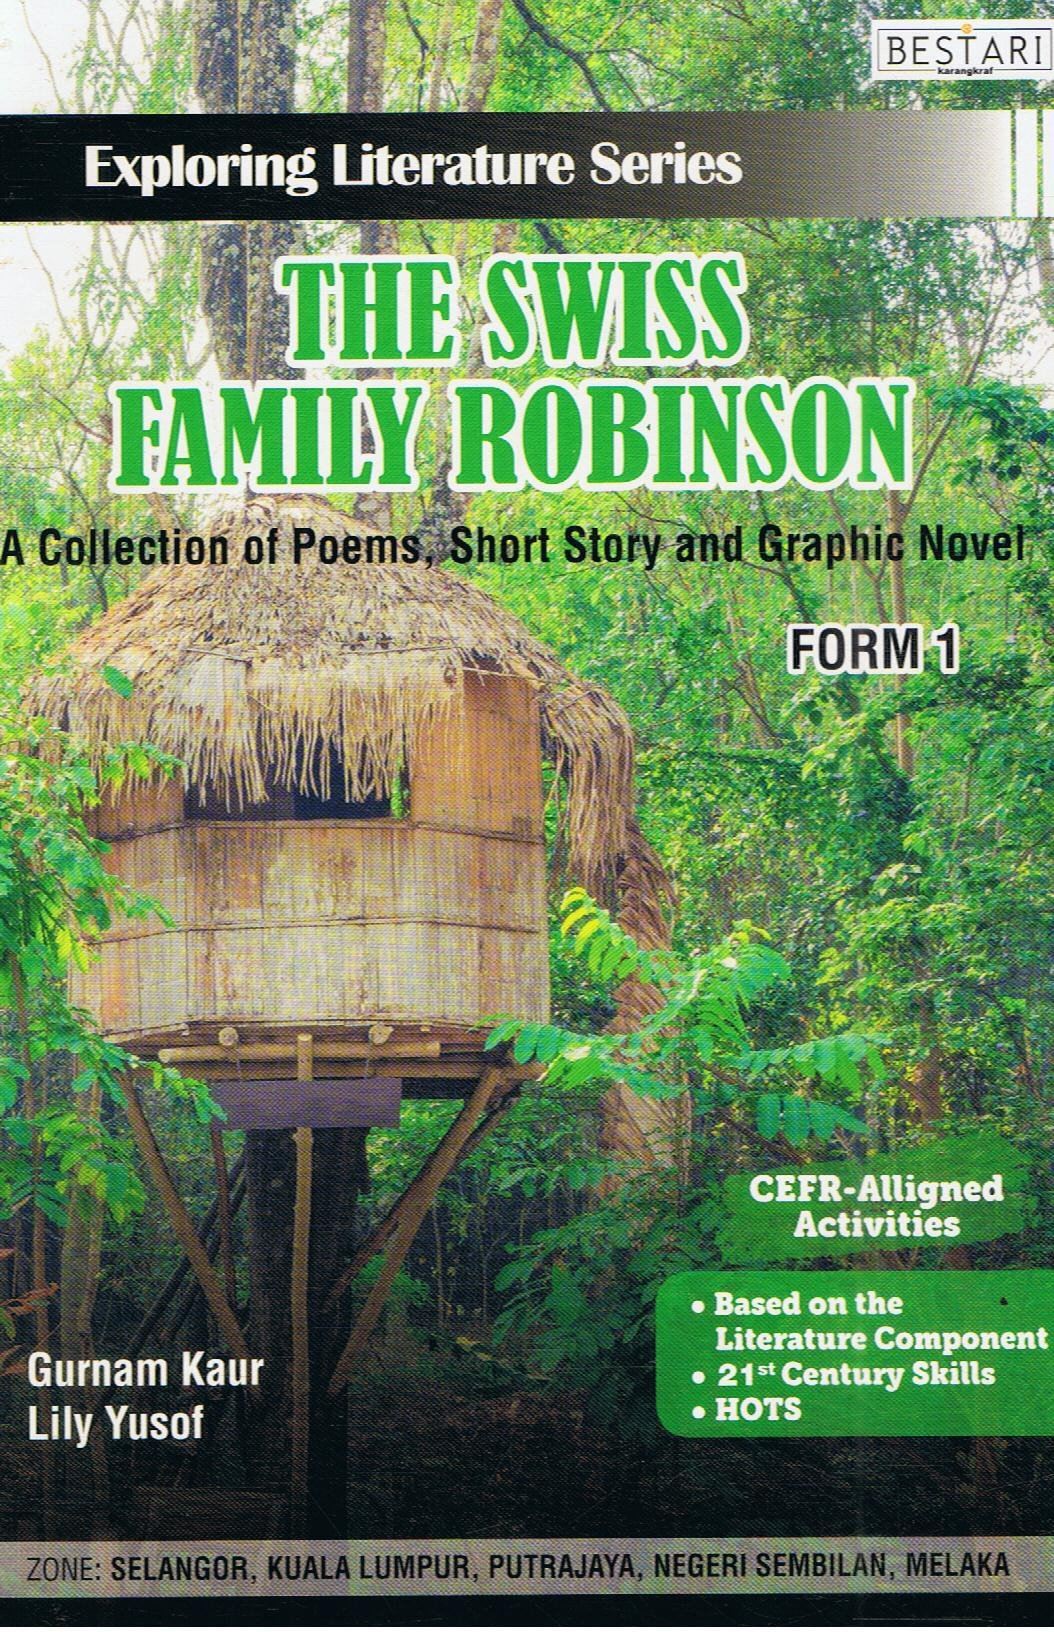 Bestari Karangkraf-Exploring Literature Series: The Swiss Family Robinson Form 1-9789674741815-BukuDBP.com